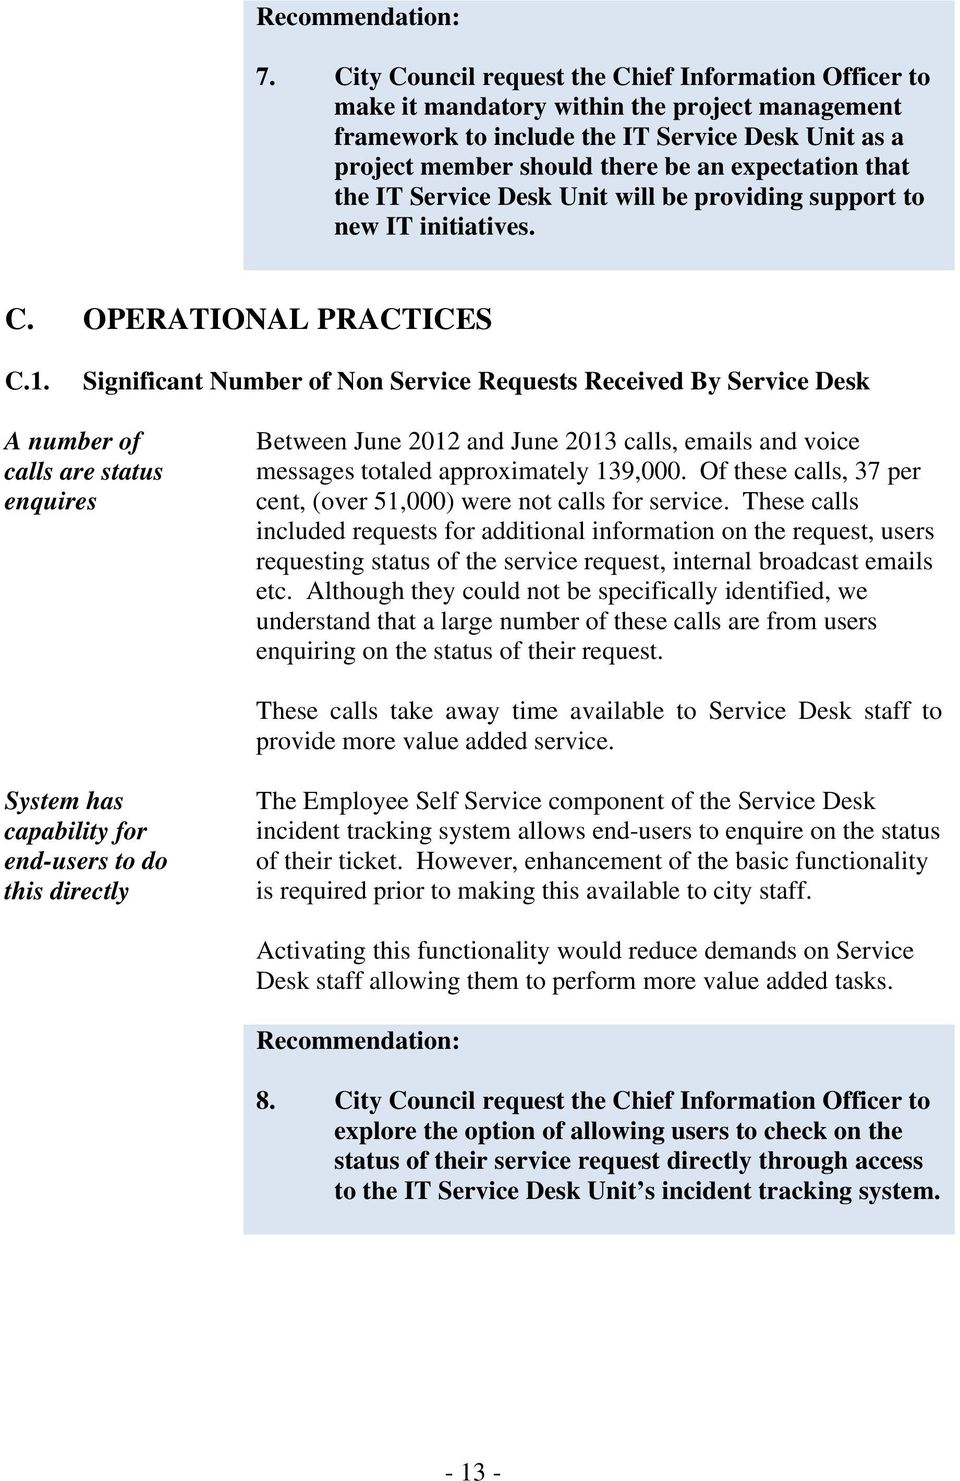 that the IT Service Desk Unit will be providing support to new IT initiatives. C. OPERATIONAL PRACTICES C.1.